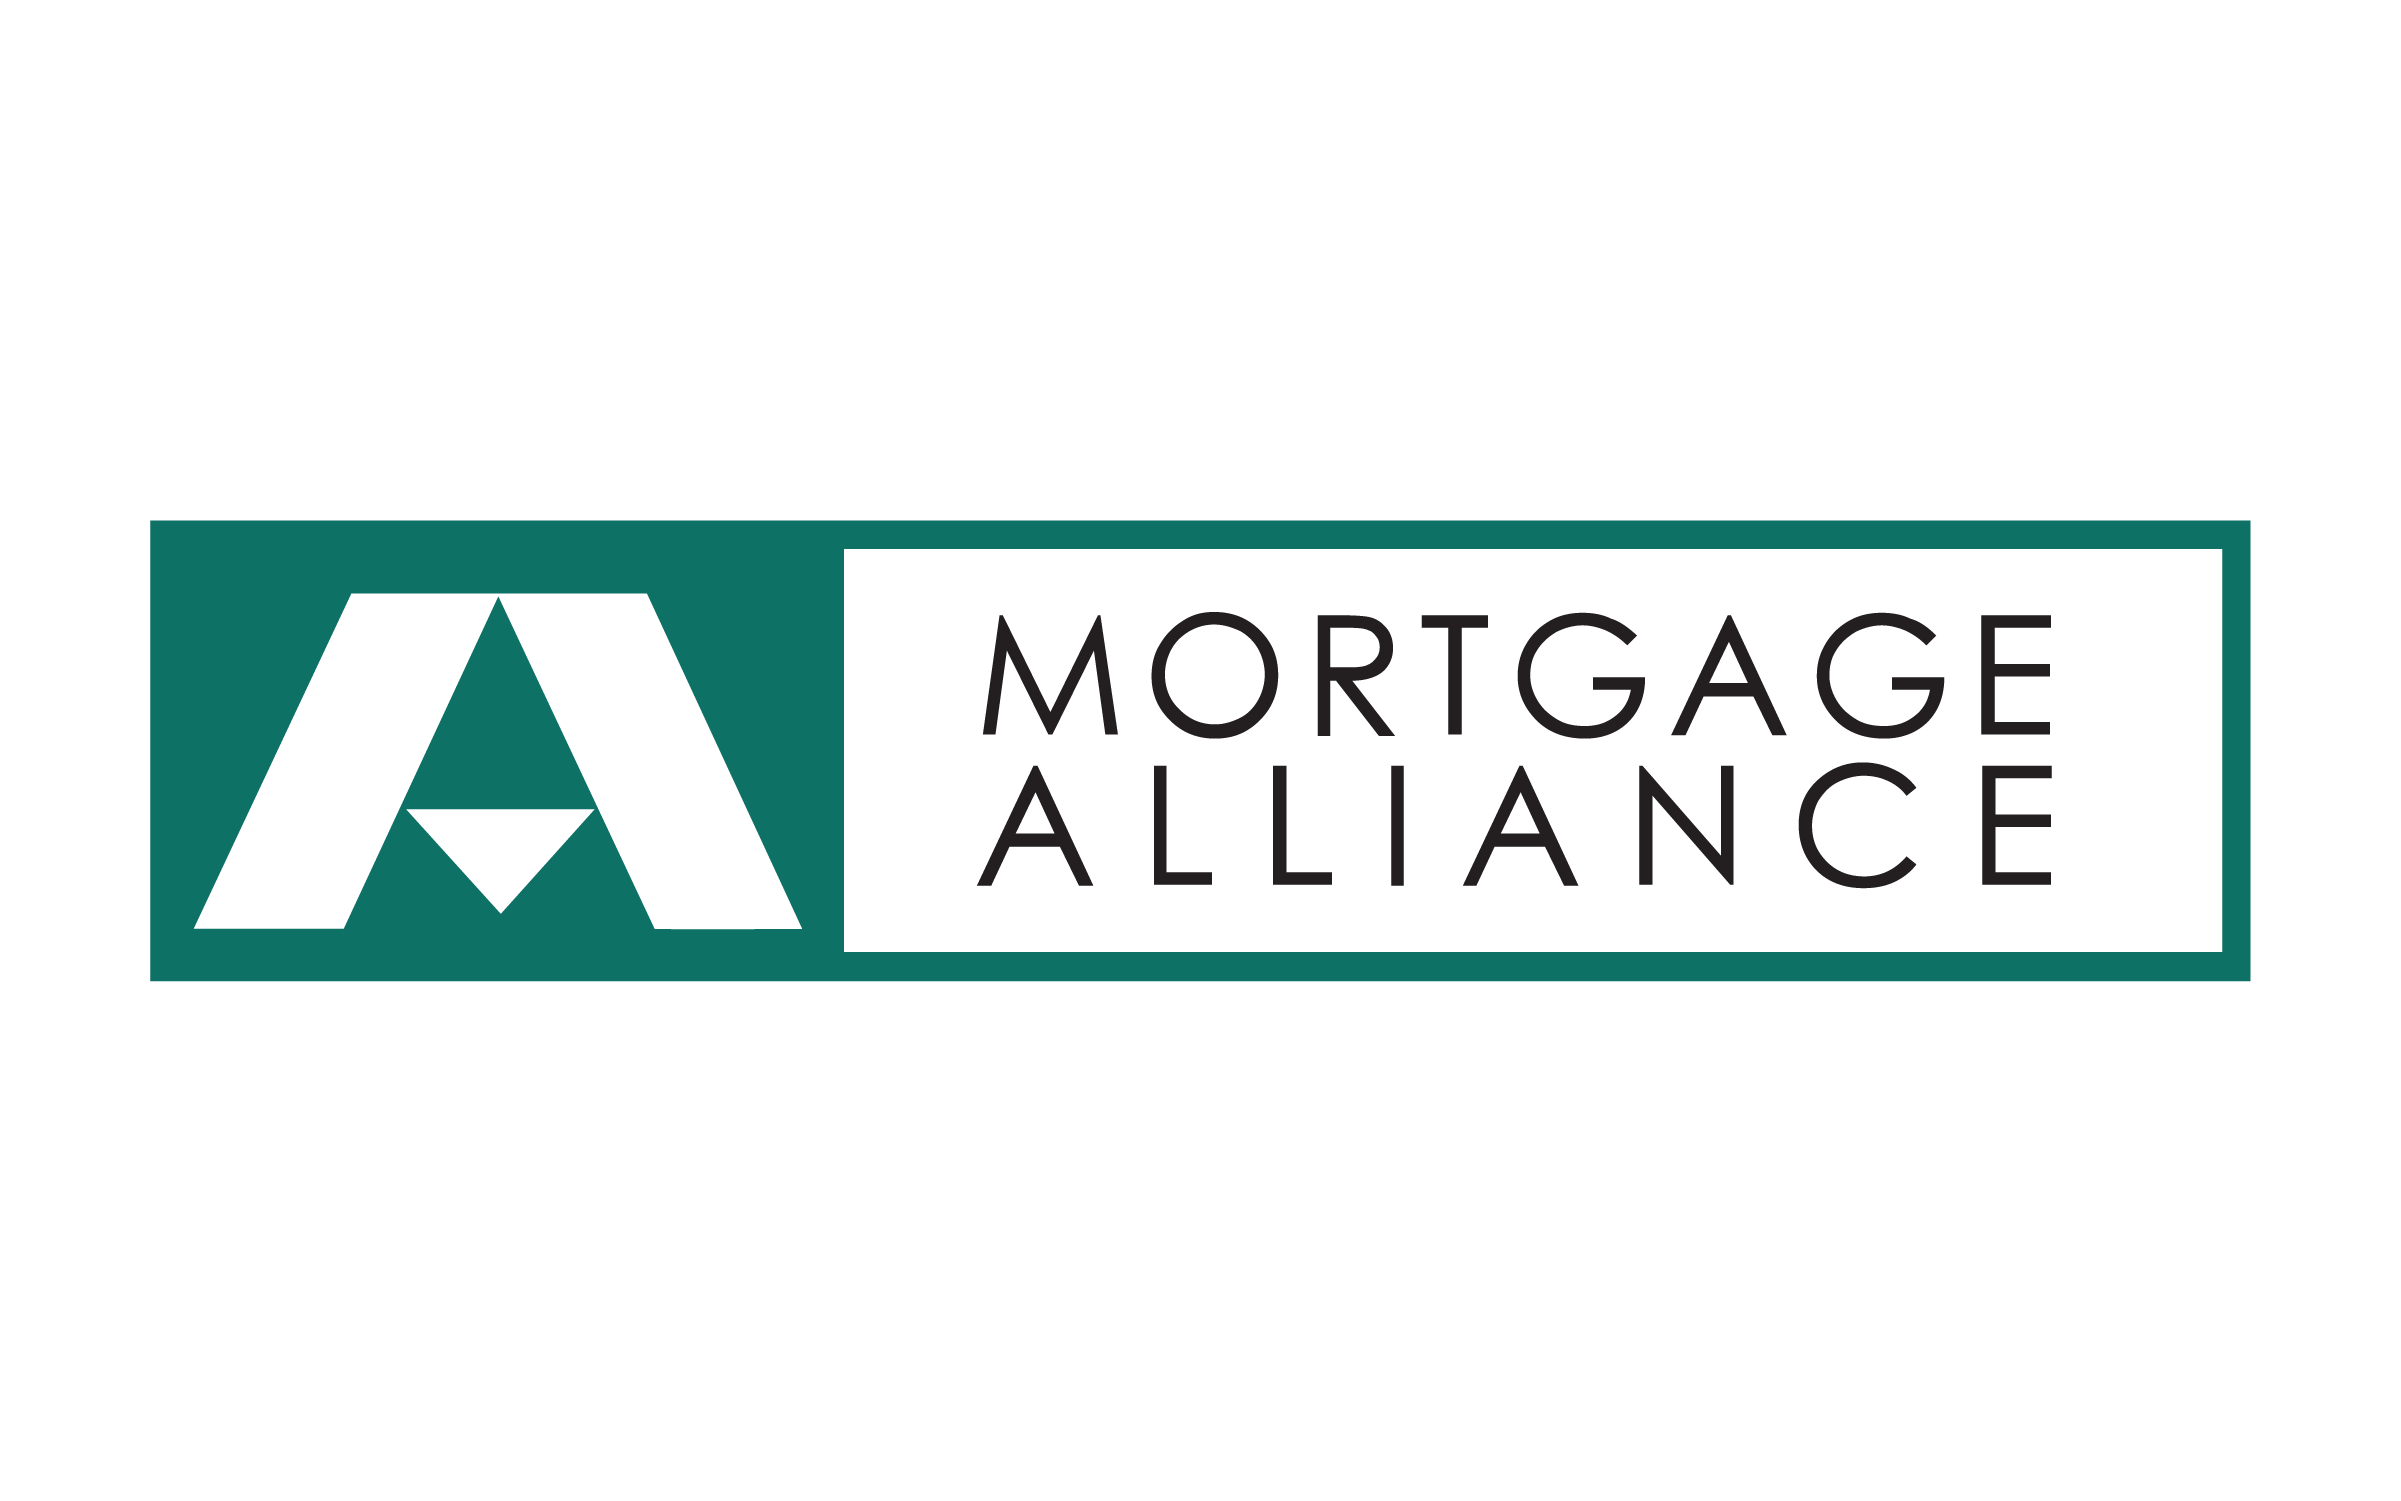 Mortgage_Alliance_Logo.png